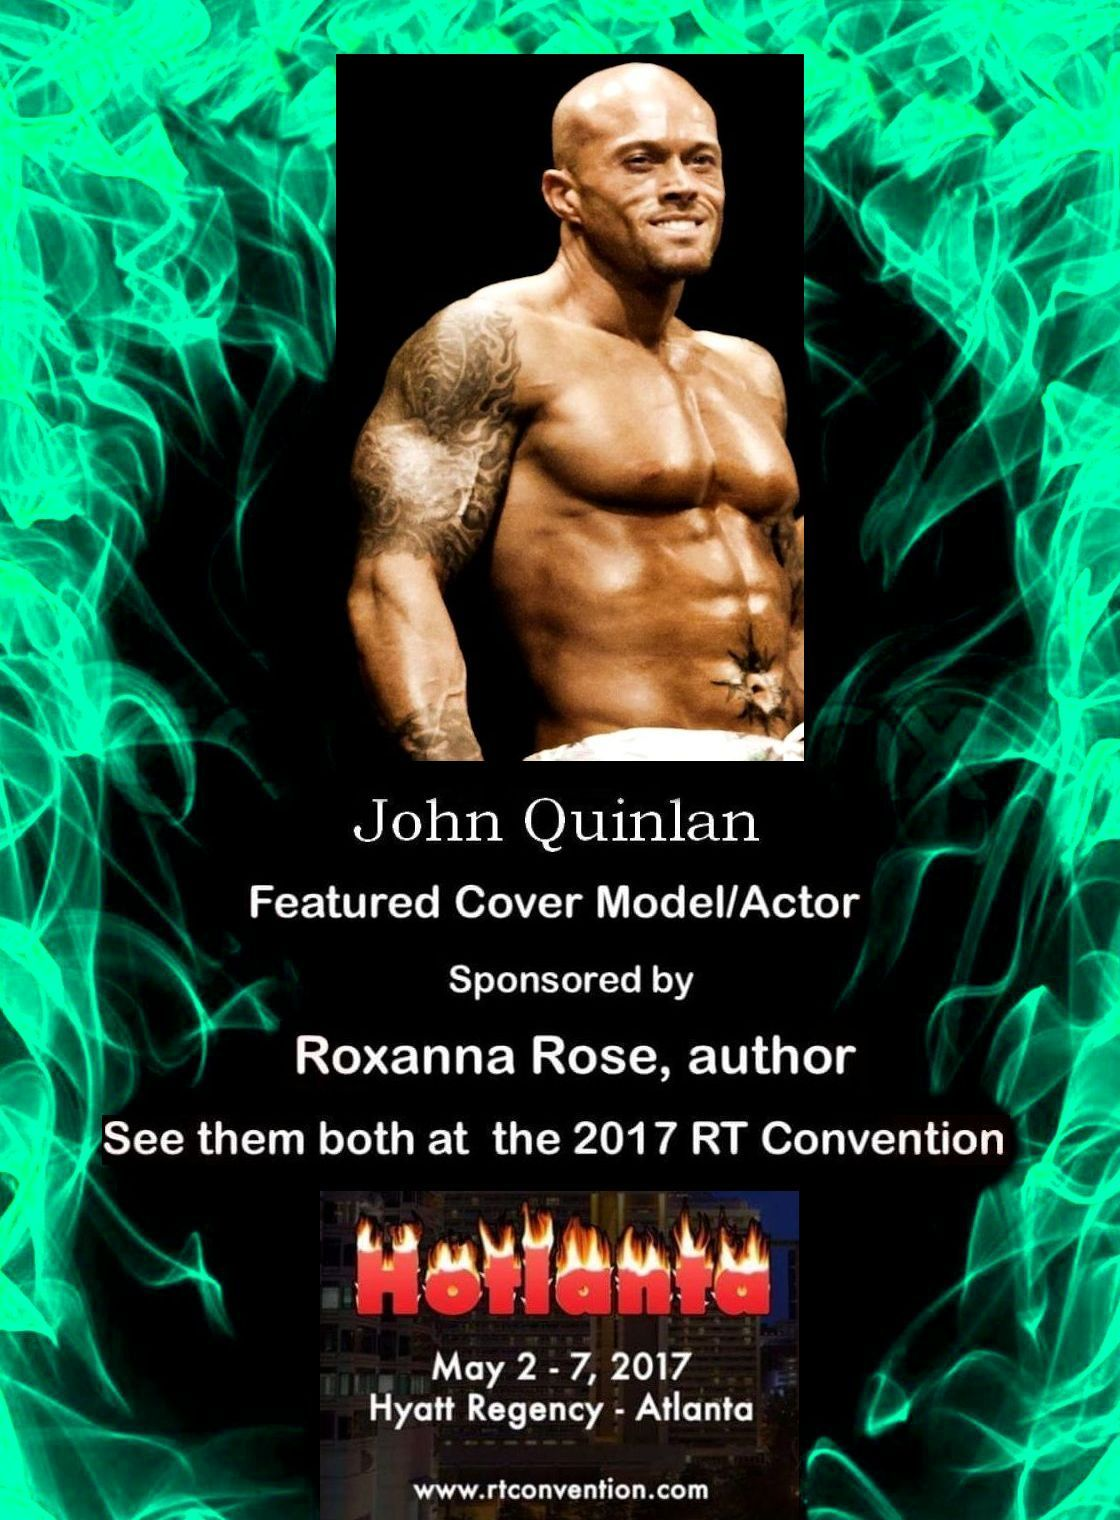 2017 RT Convention Atlanta Featured Cover Model John Joseph Quinlan by Roxanna Rose #JohnQuinlan #RT2017 #RT17